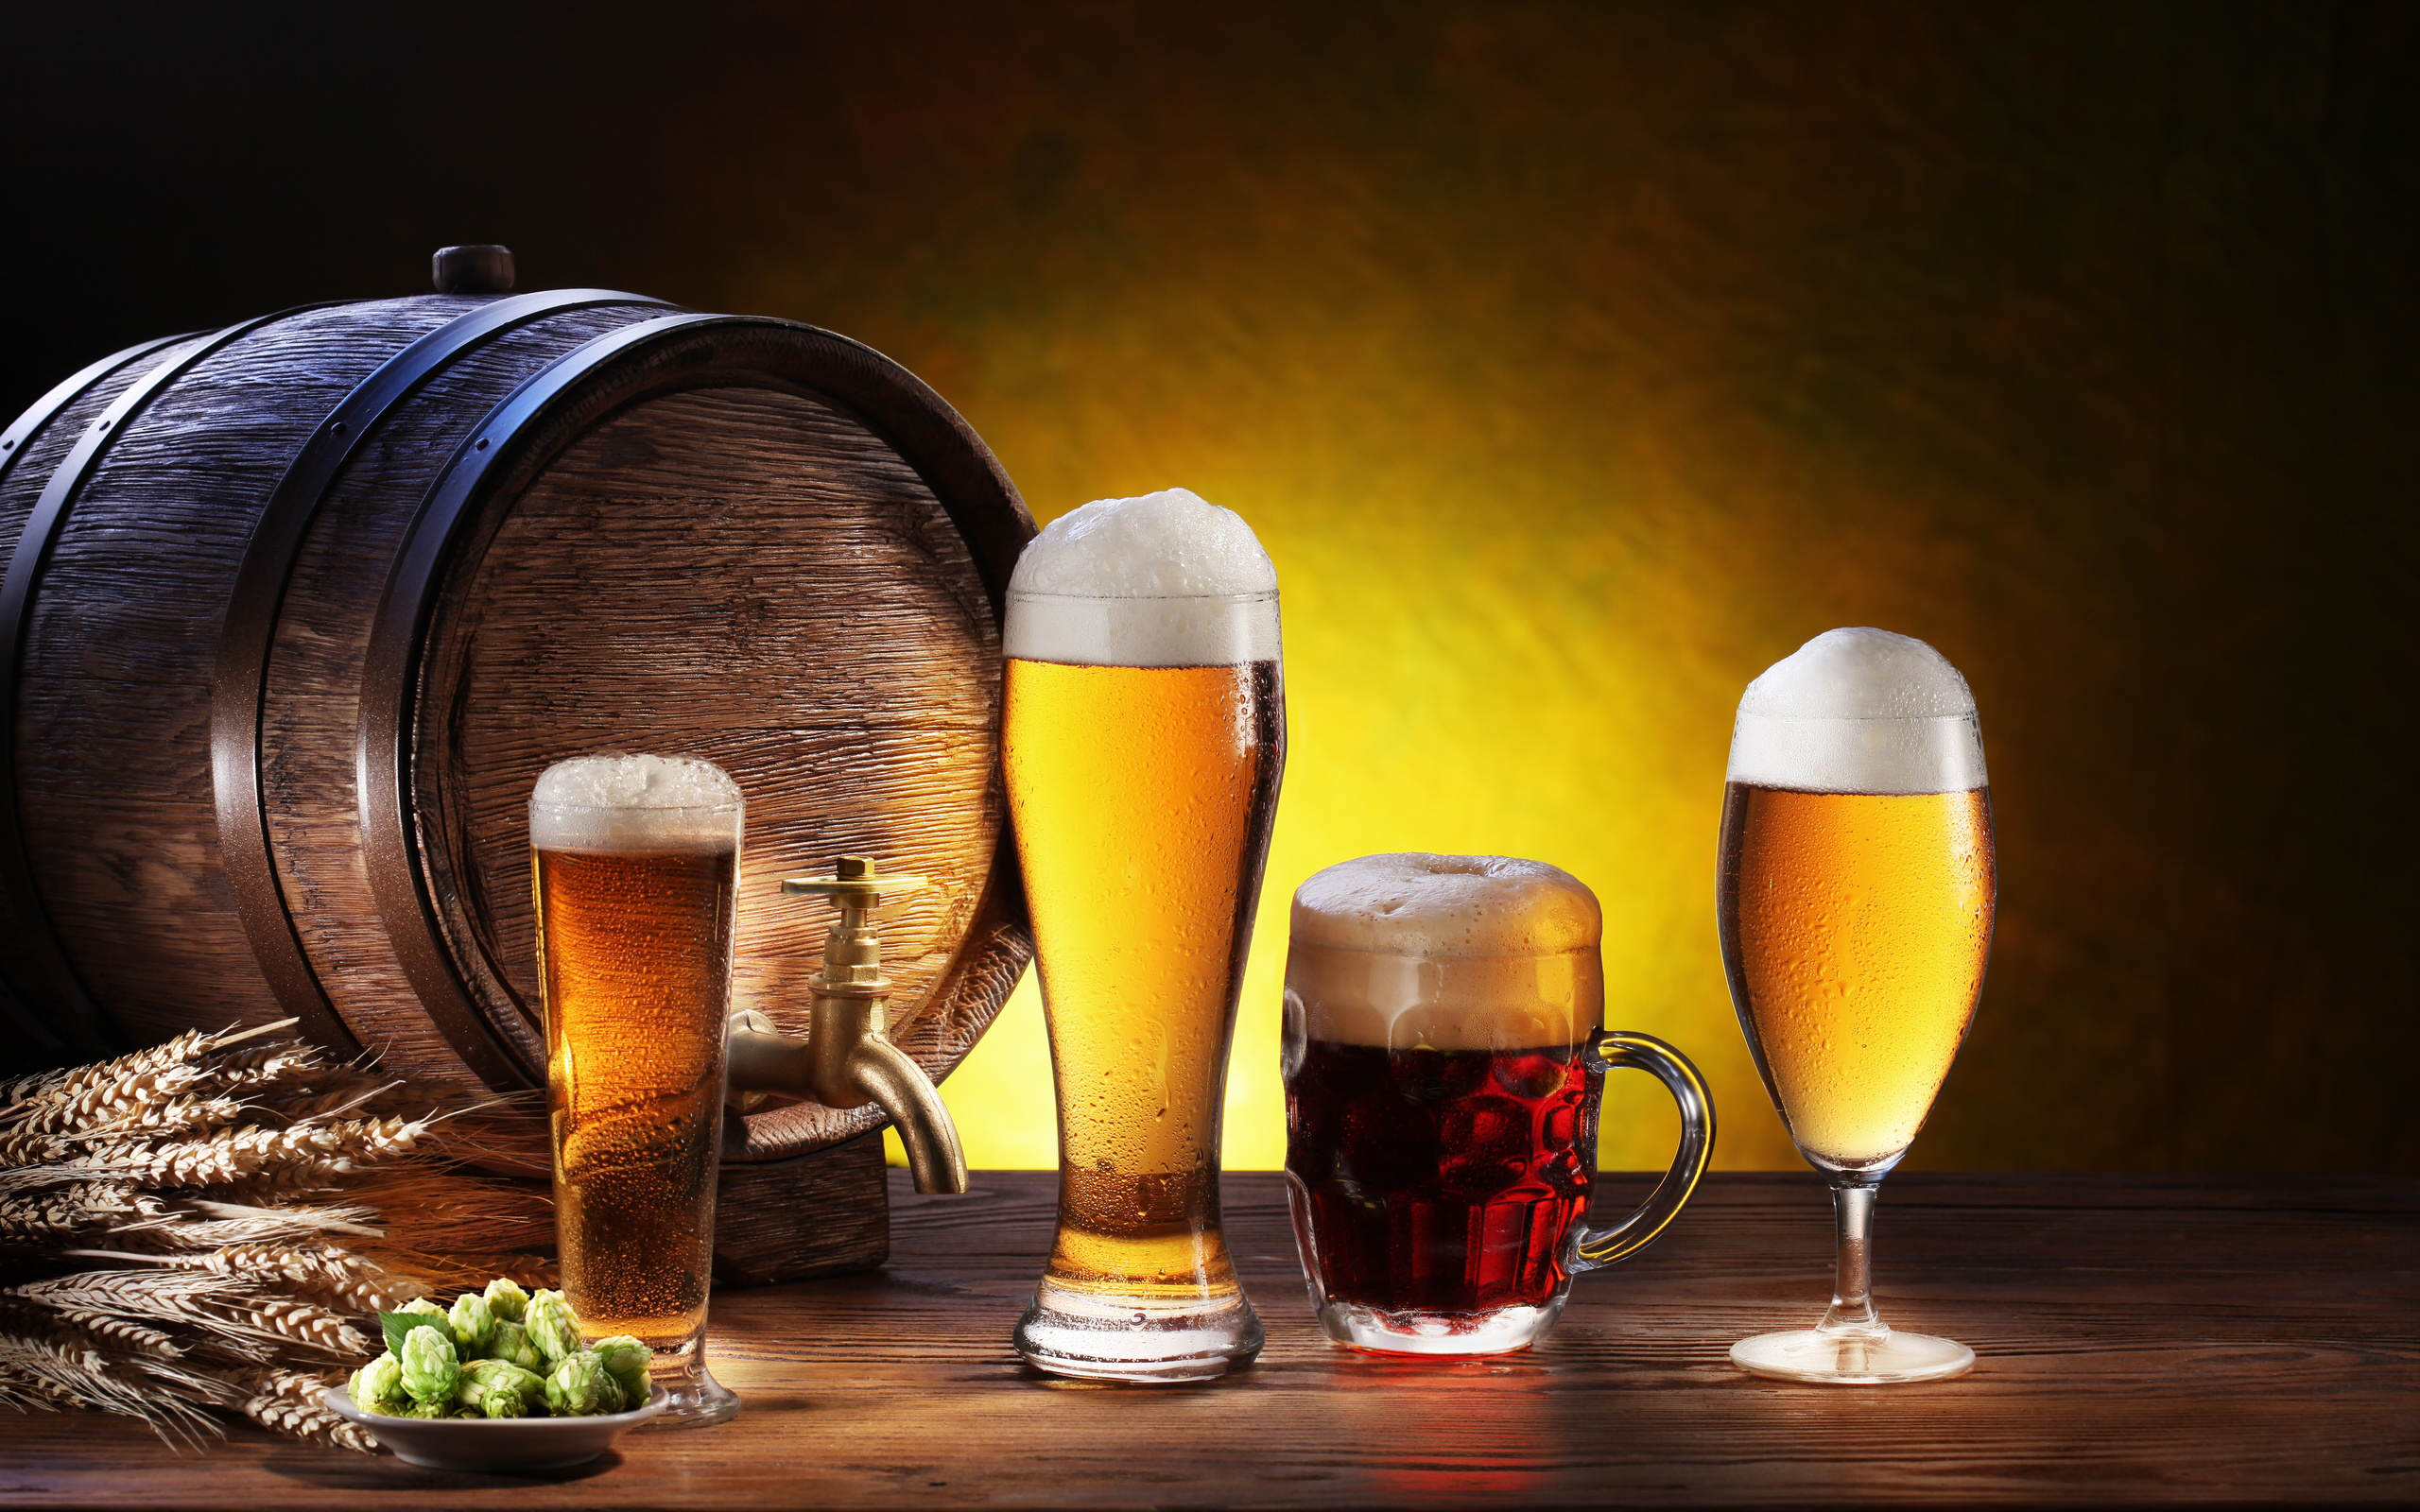 Heres Where You Can Find The Best And Worst Pints In The UK 15203733404 df7b1e7288 o